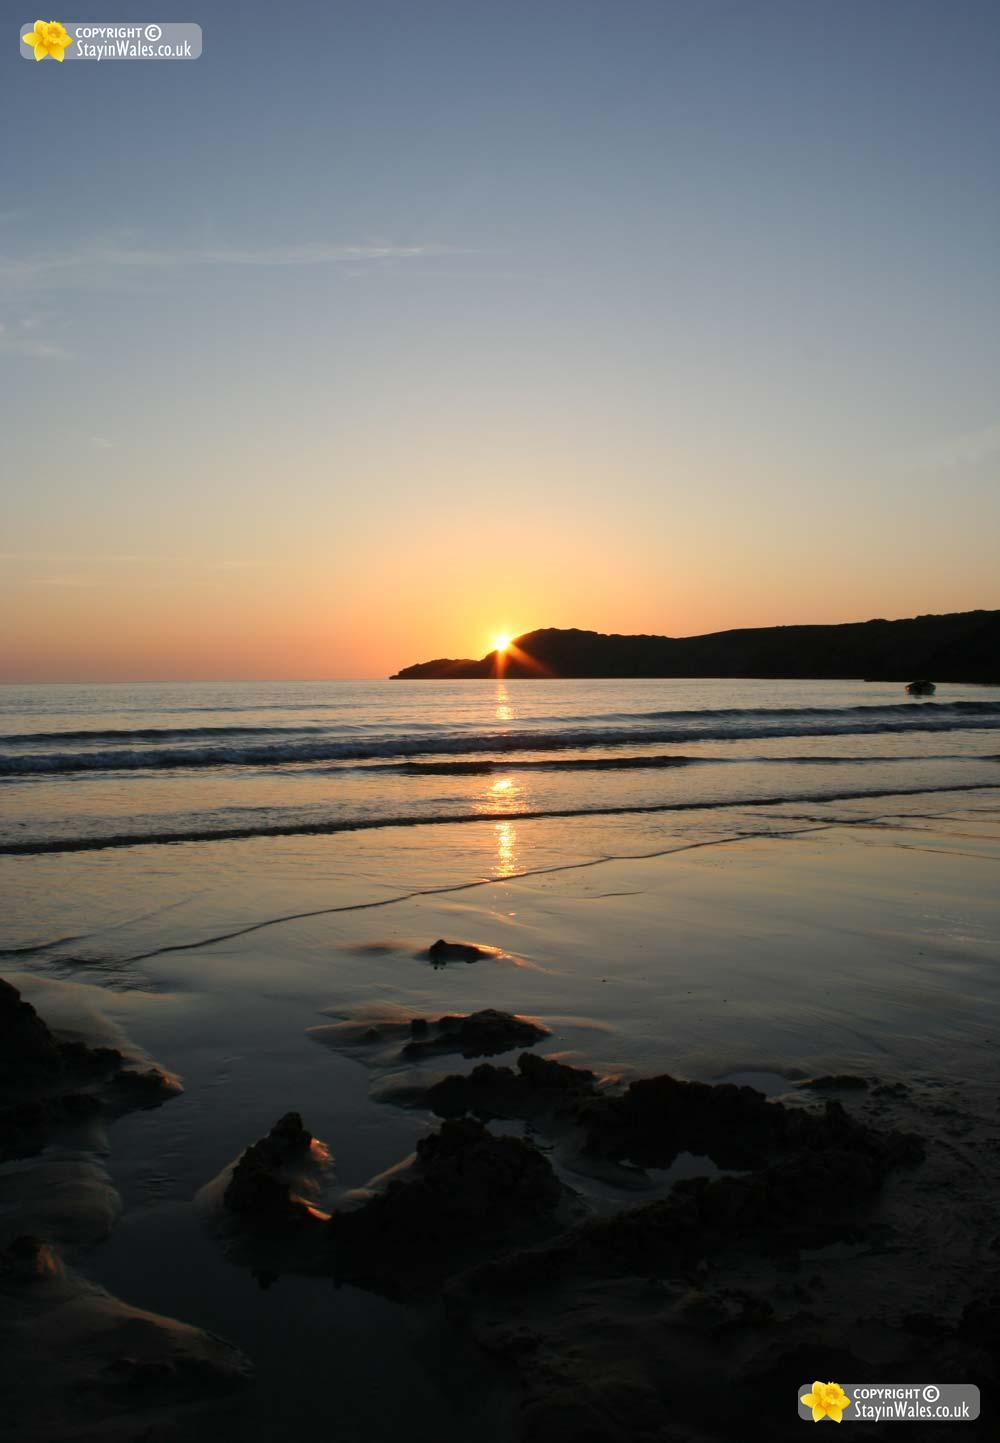 Whitesands Bay picture